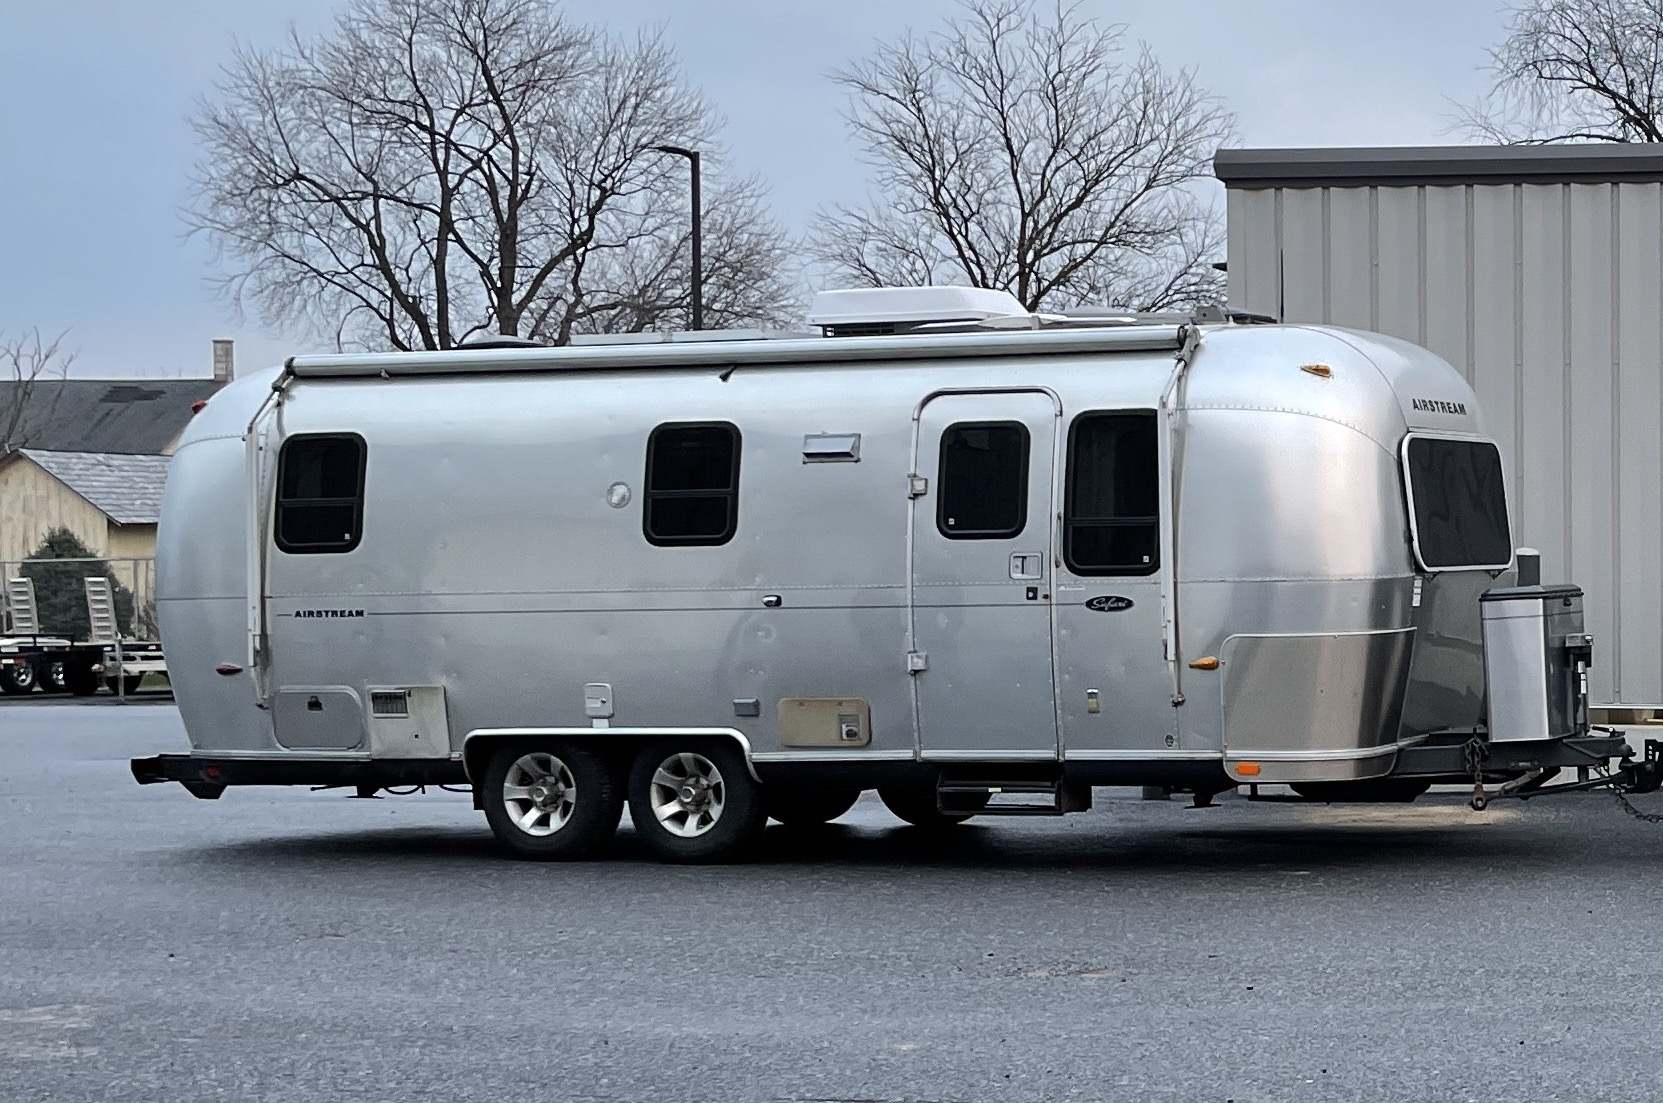 airstream trailer for sale or lease passenger side